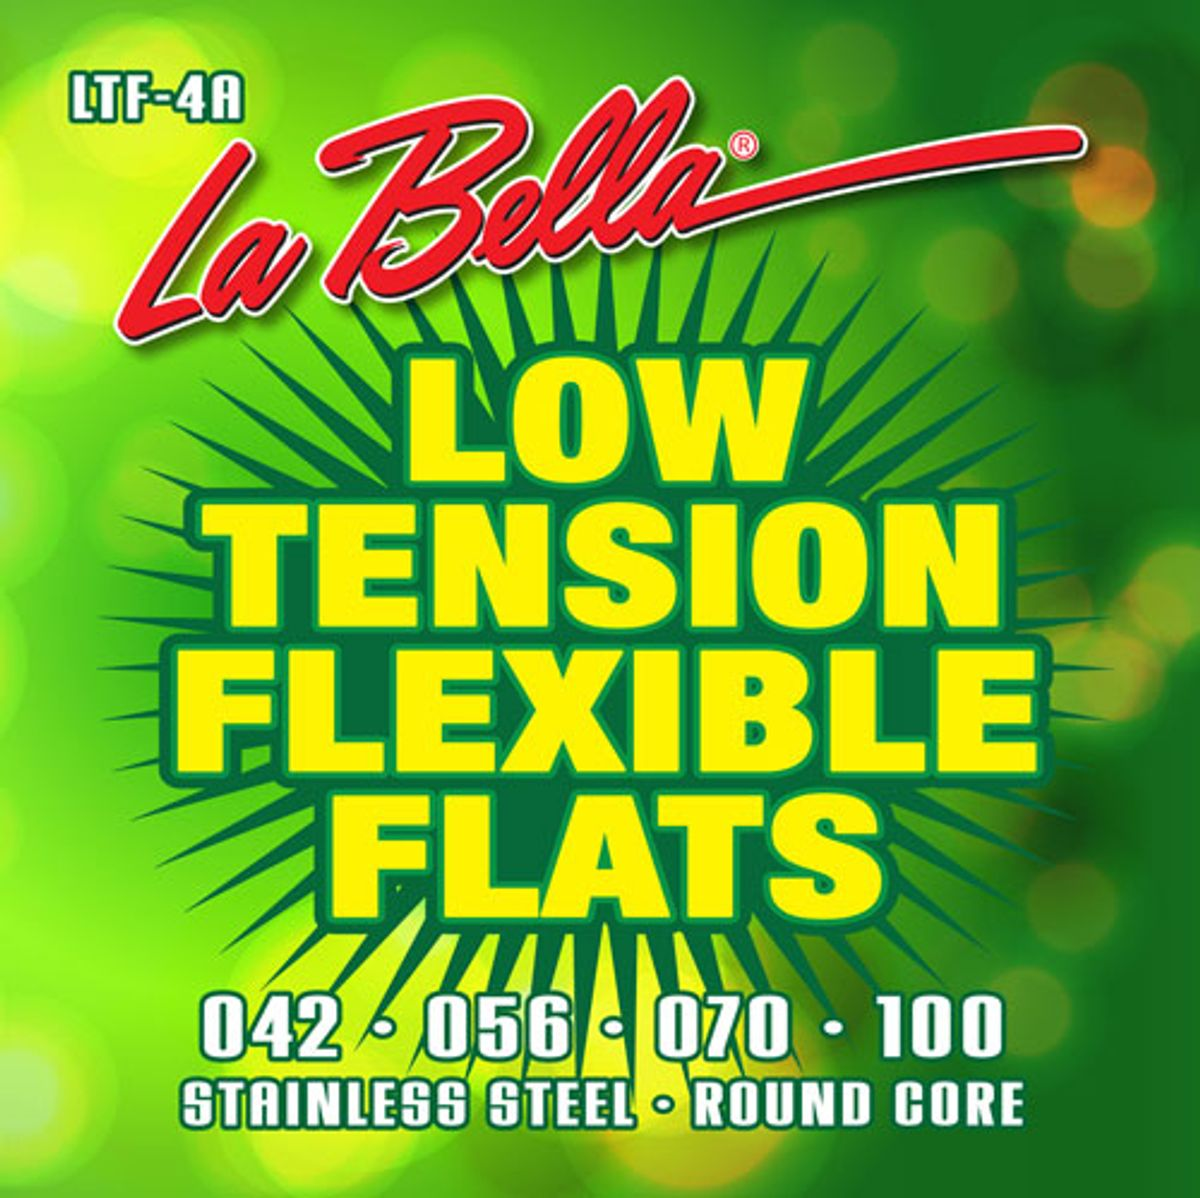 LaBella Strings Announces Low Tension Flexible Flats